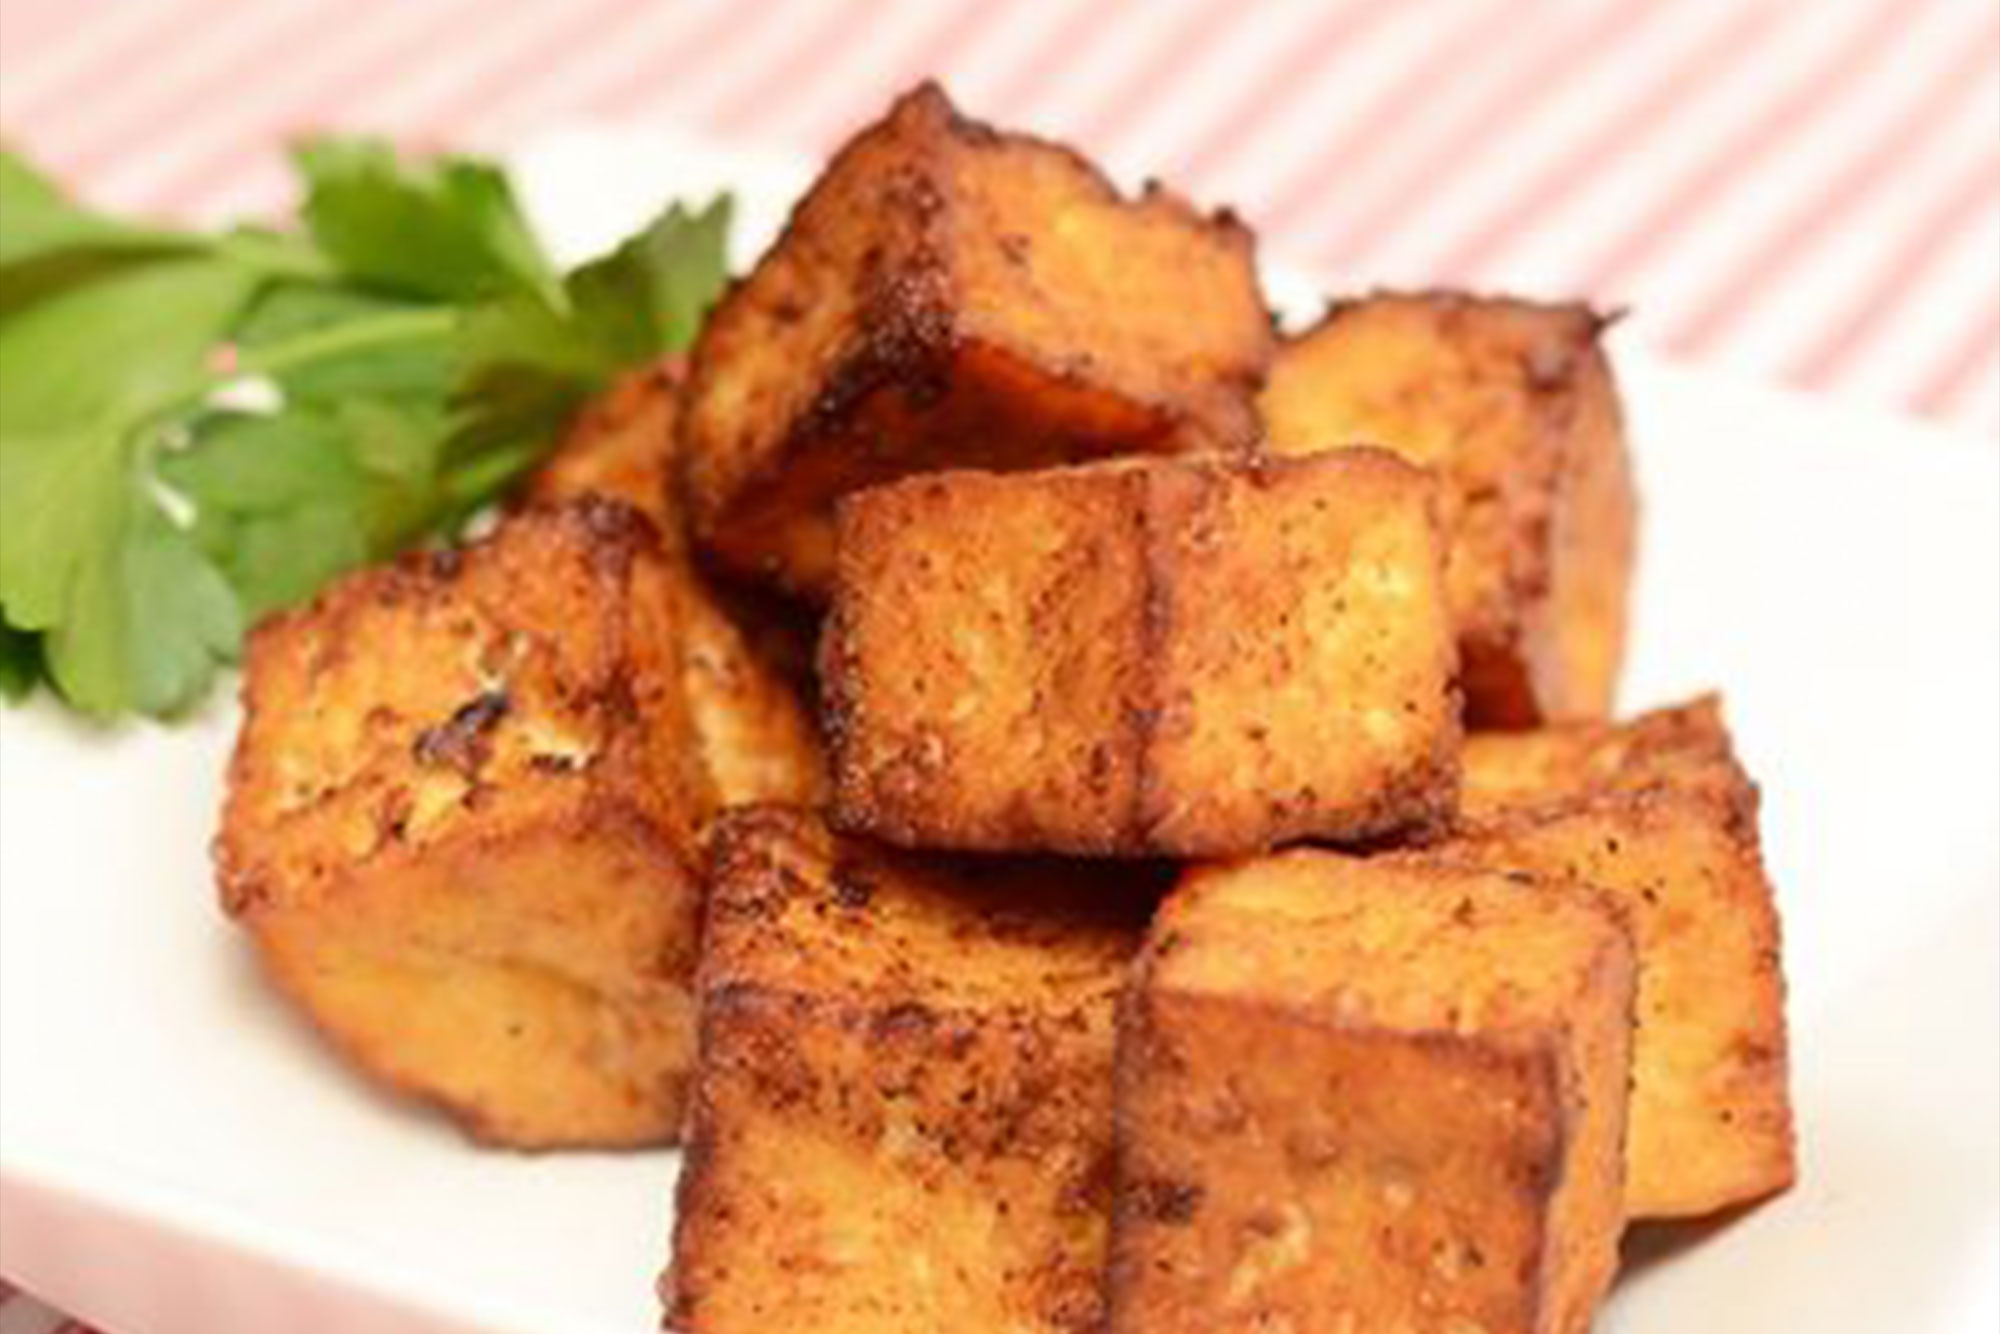 Inspiration: Fried Tofu with Spices and Herbs